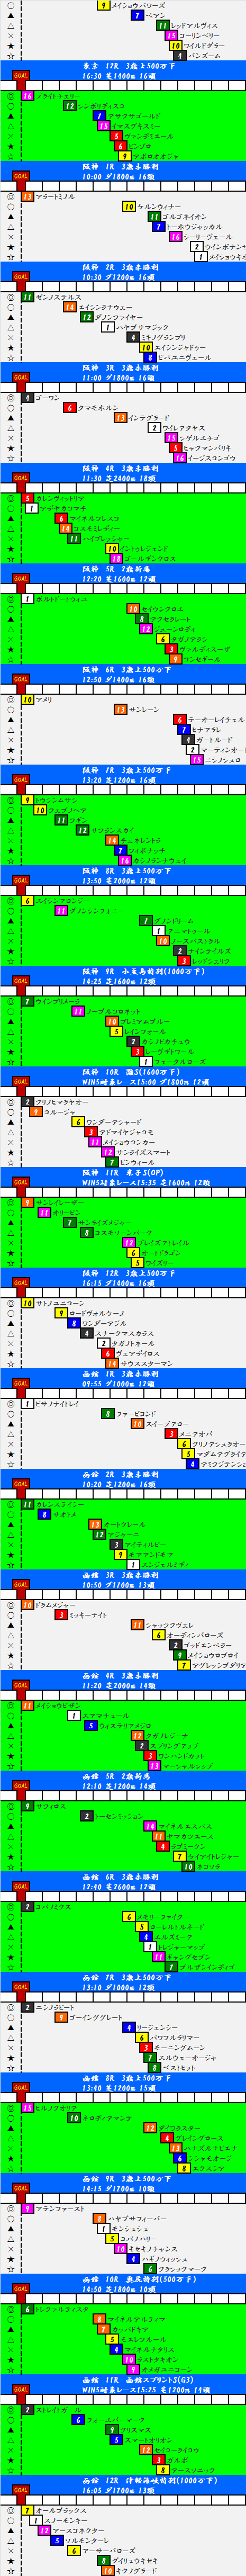 201406222.png